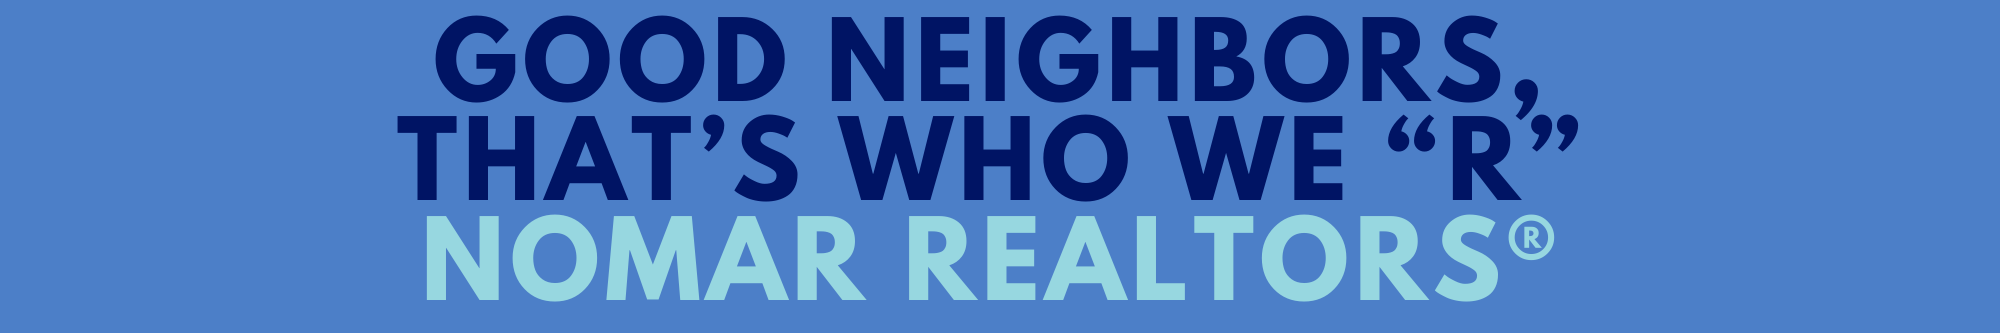 Good Neighbors Thats Who We R NOMAR REALTORS